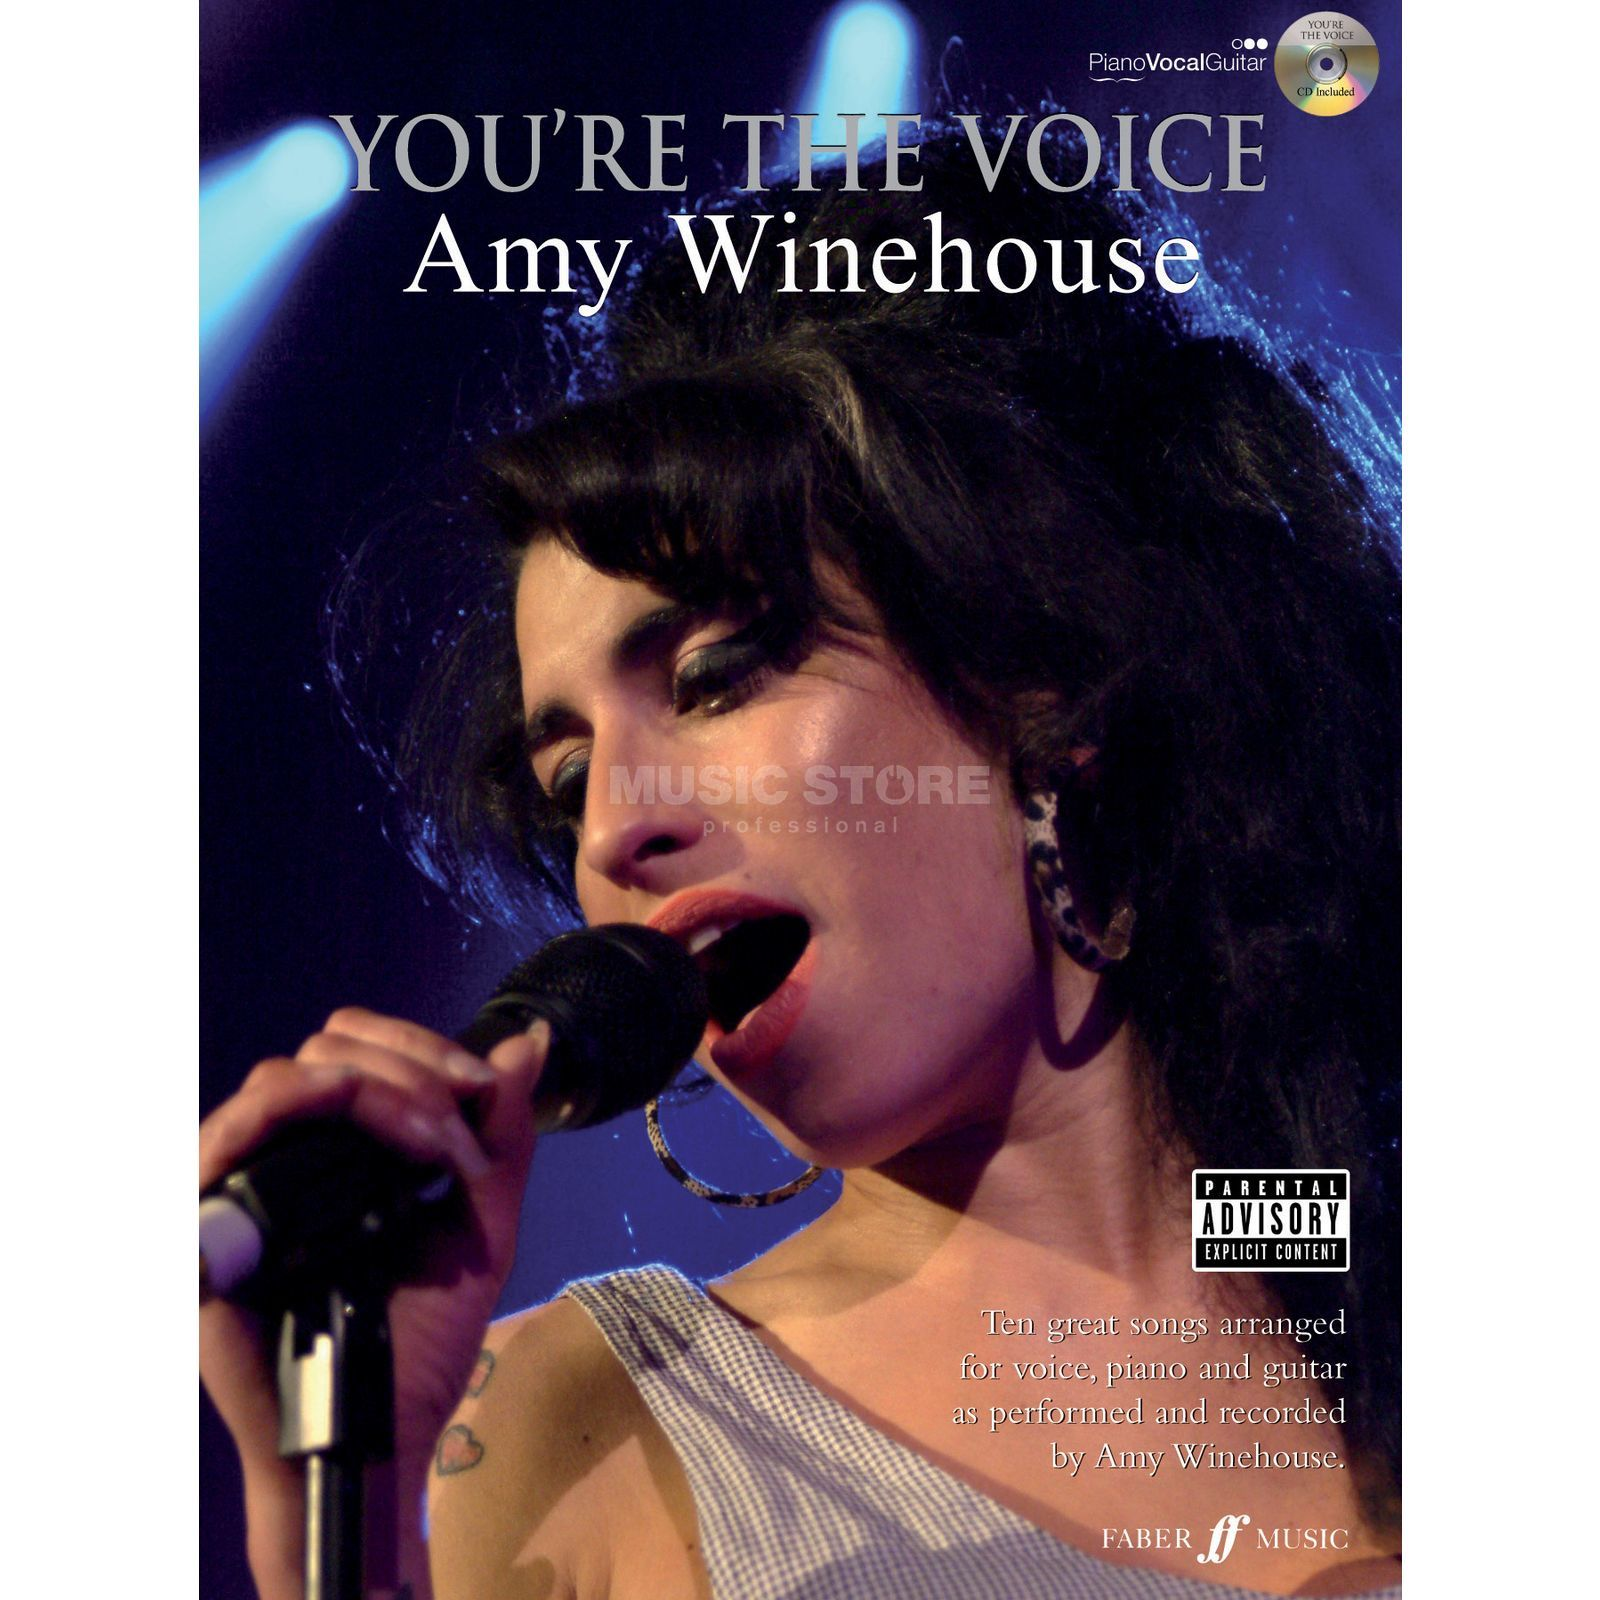 Faber Music You're the voice - A Winehouse PVG, Sheet Music and CD Produktbillede